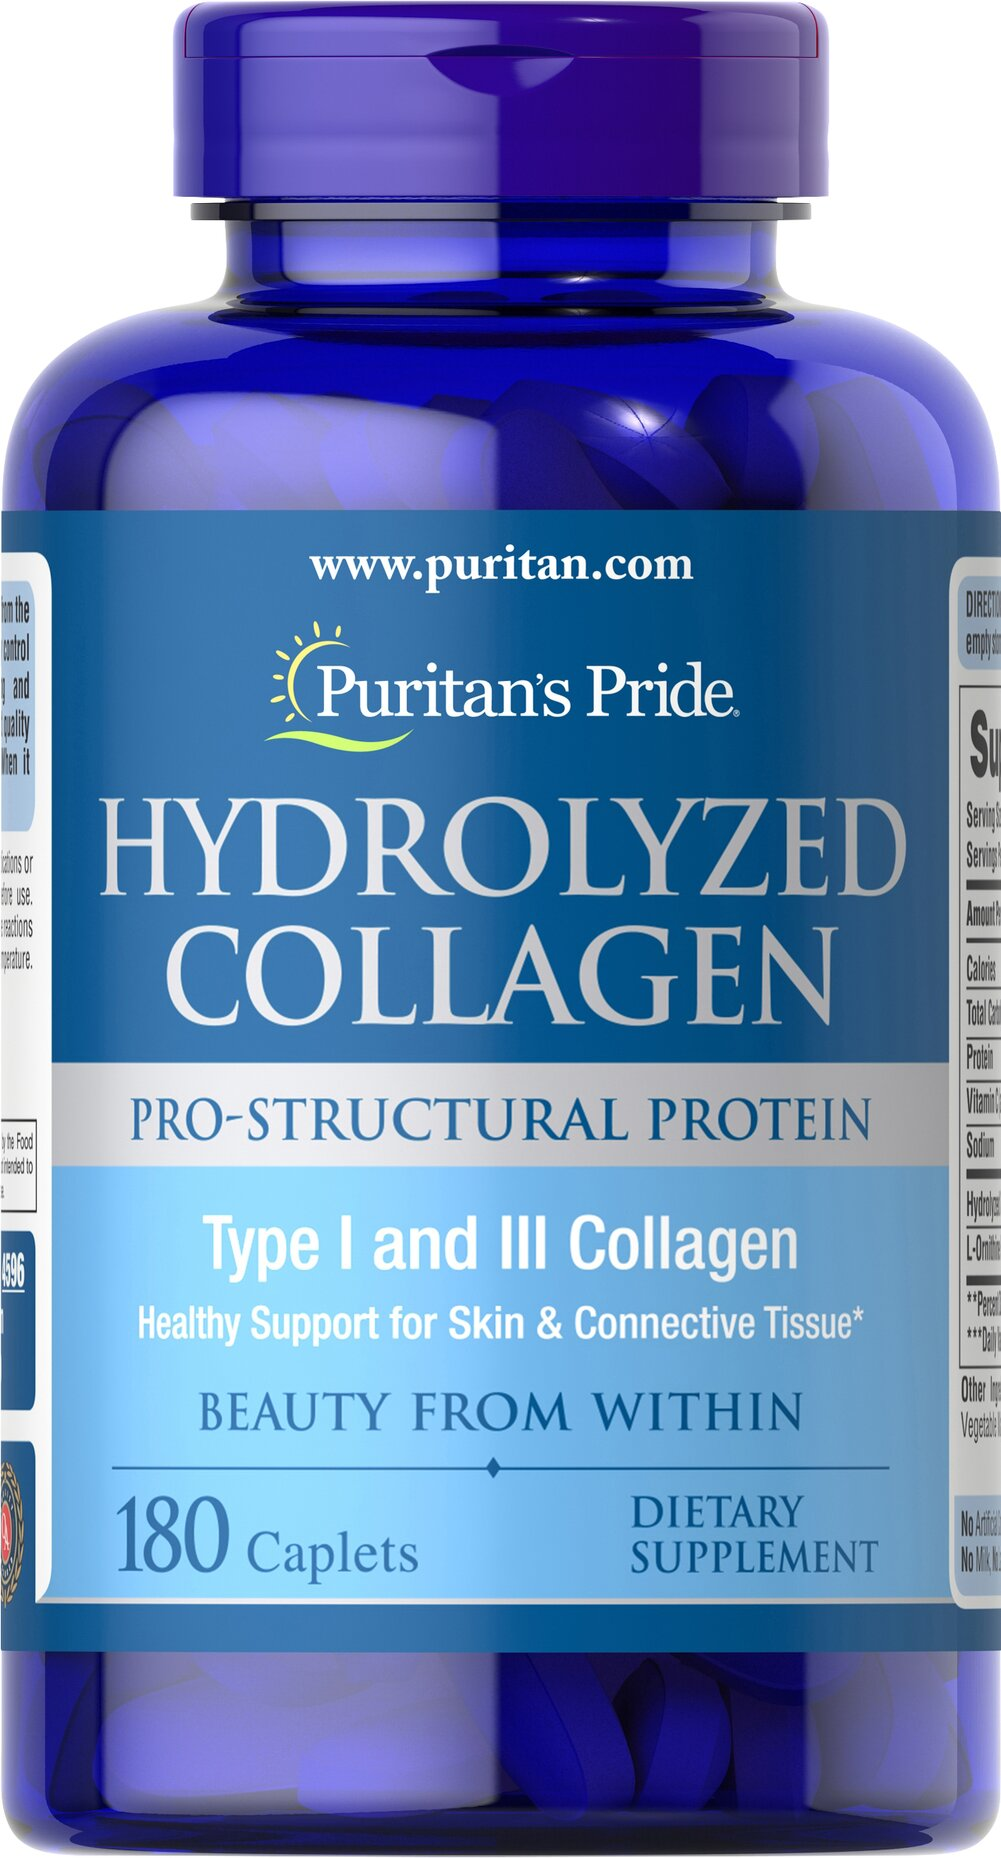 Hydrolyzed Collagen 1000 mg Thumbnail Alternate Bottle View